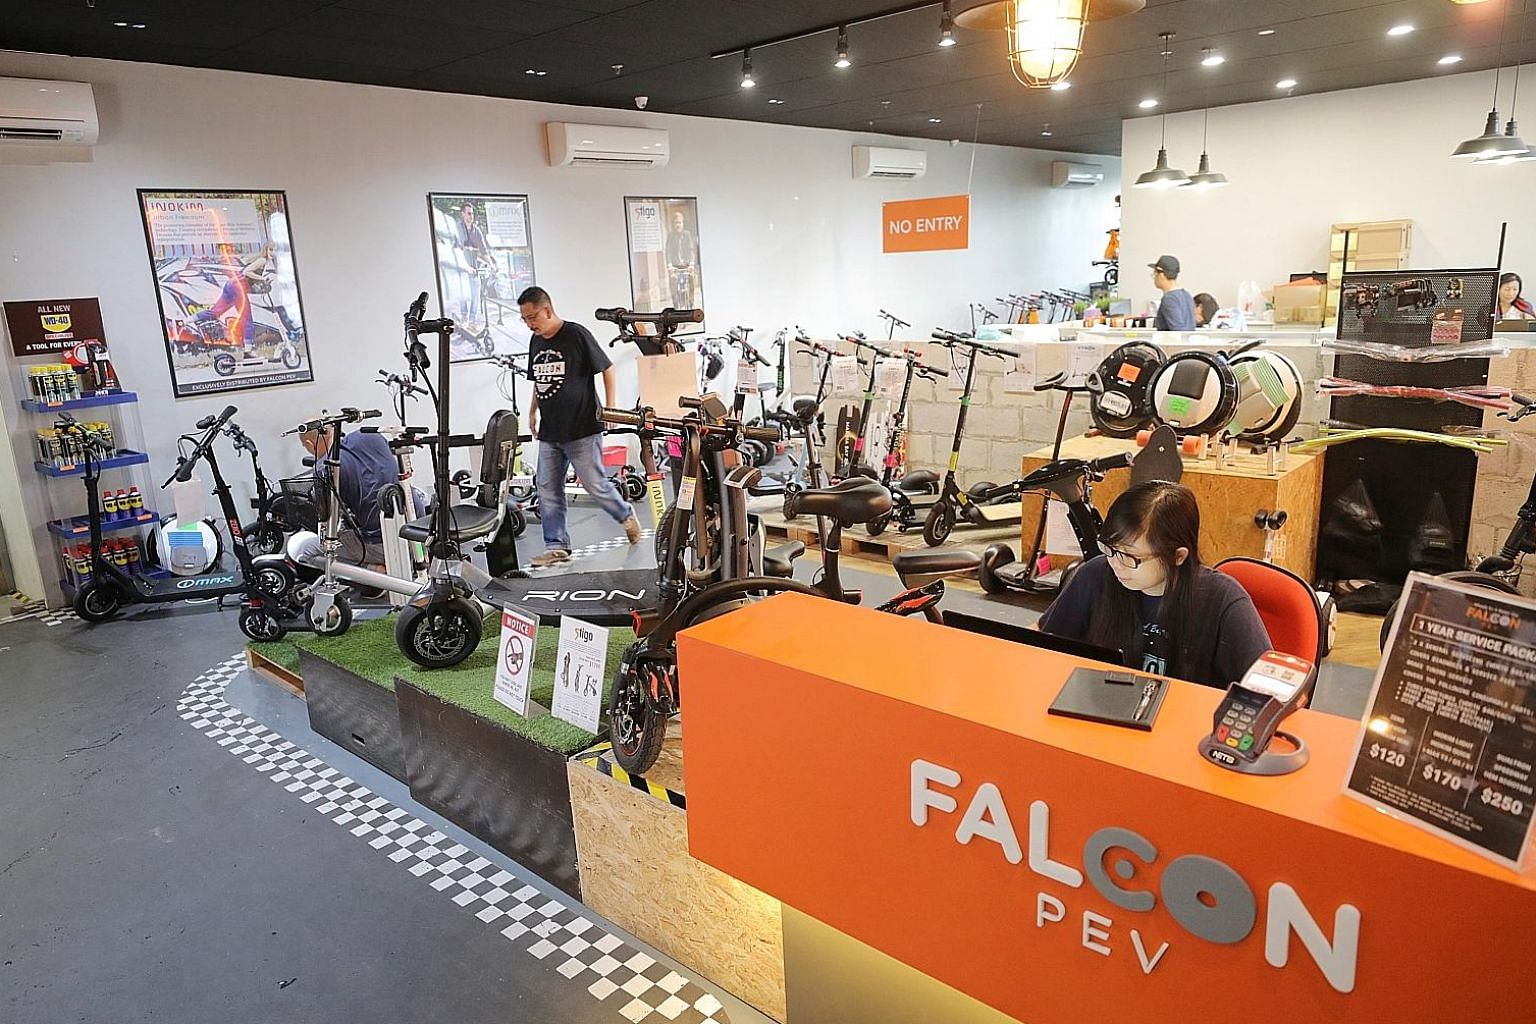 Personal mobility device retailers such as Falcon PEV are concerned that the new safety standard for PMDs could drive up costs and cause sales to drop.